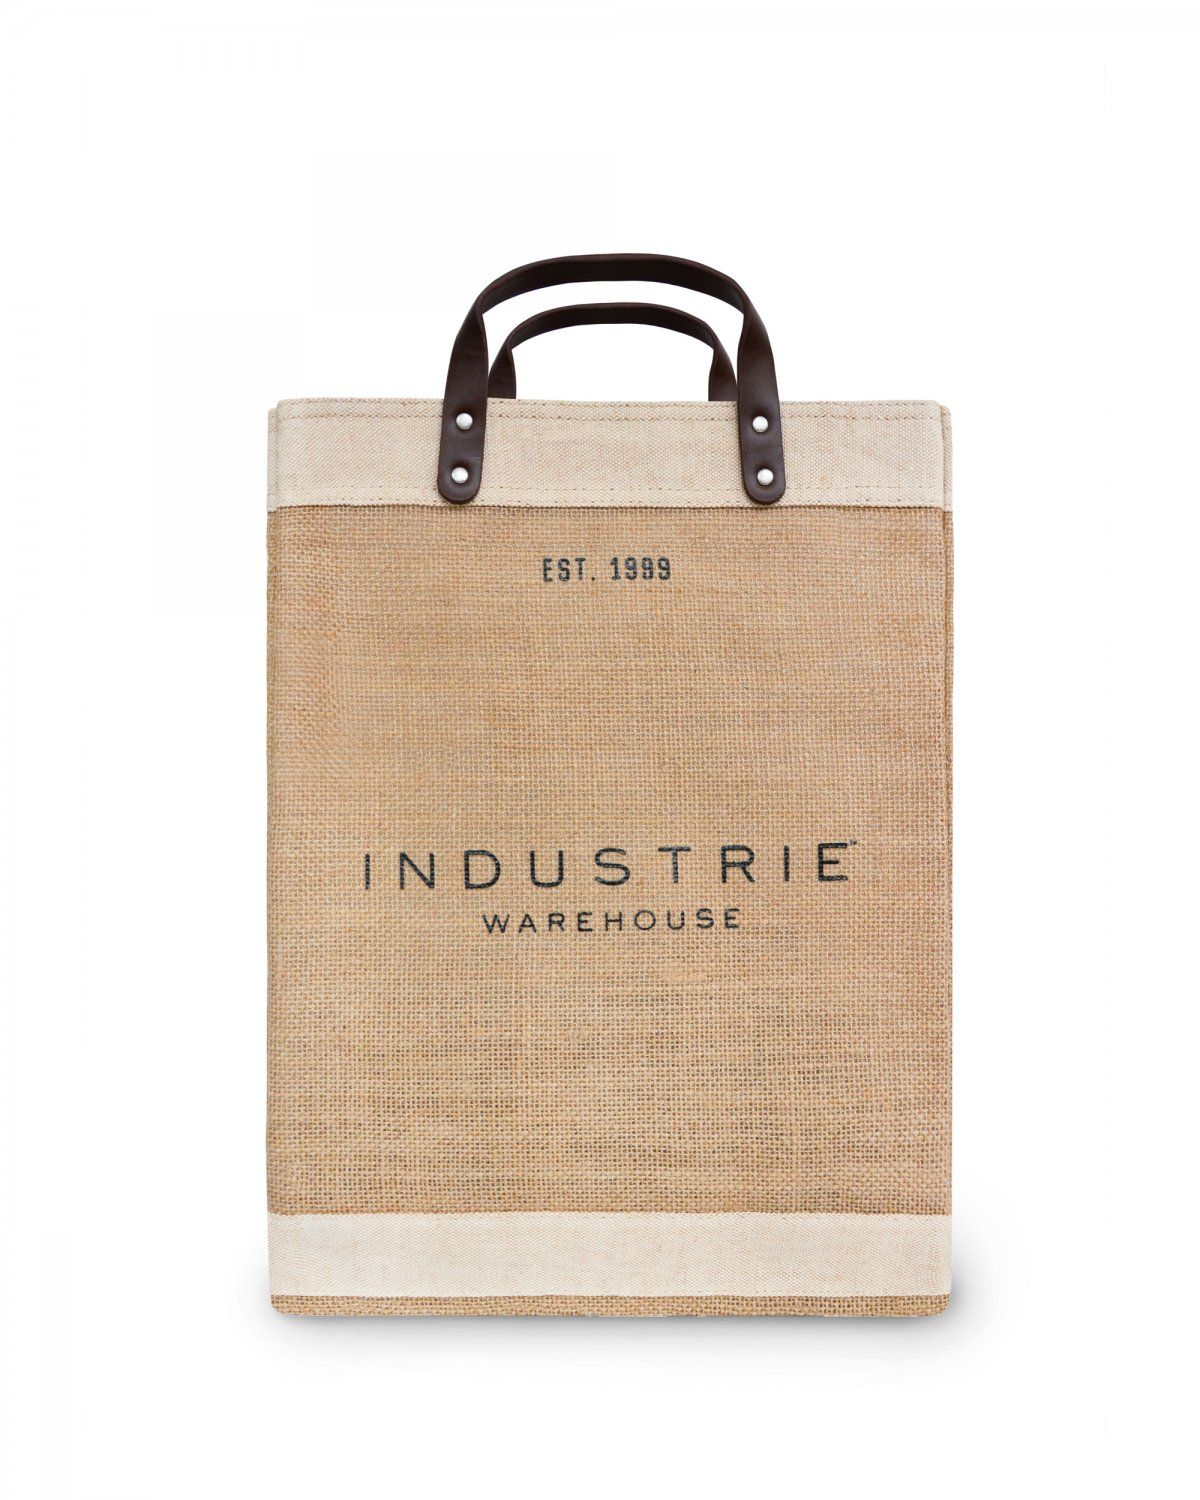 Download Priority Http Industrie Com Au 3337056 The Hessian Bag Hessian Cloth Bags Shopping Bag Design Hessian Bags